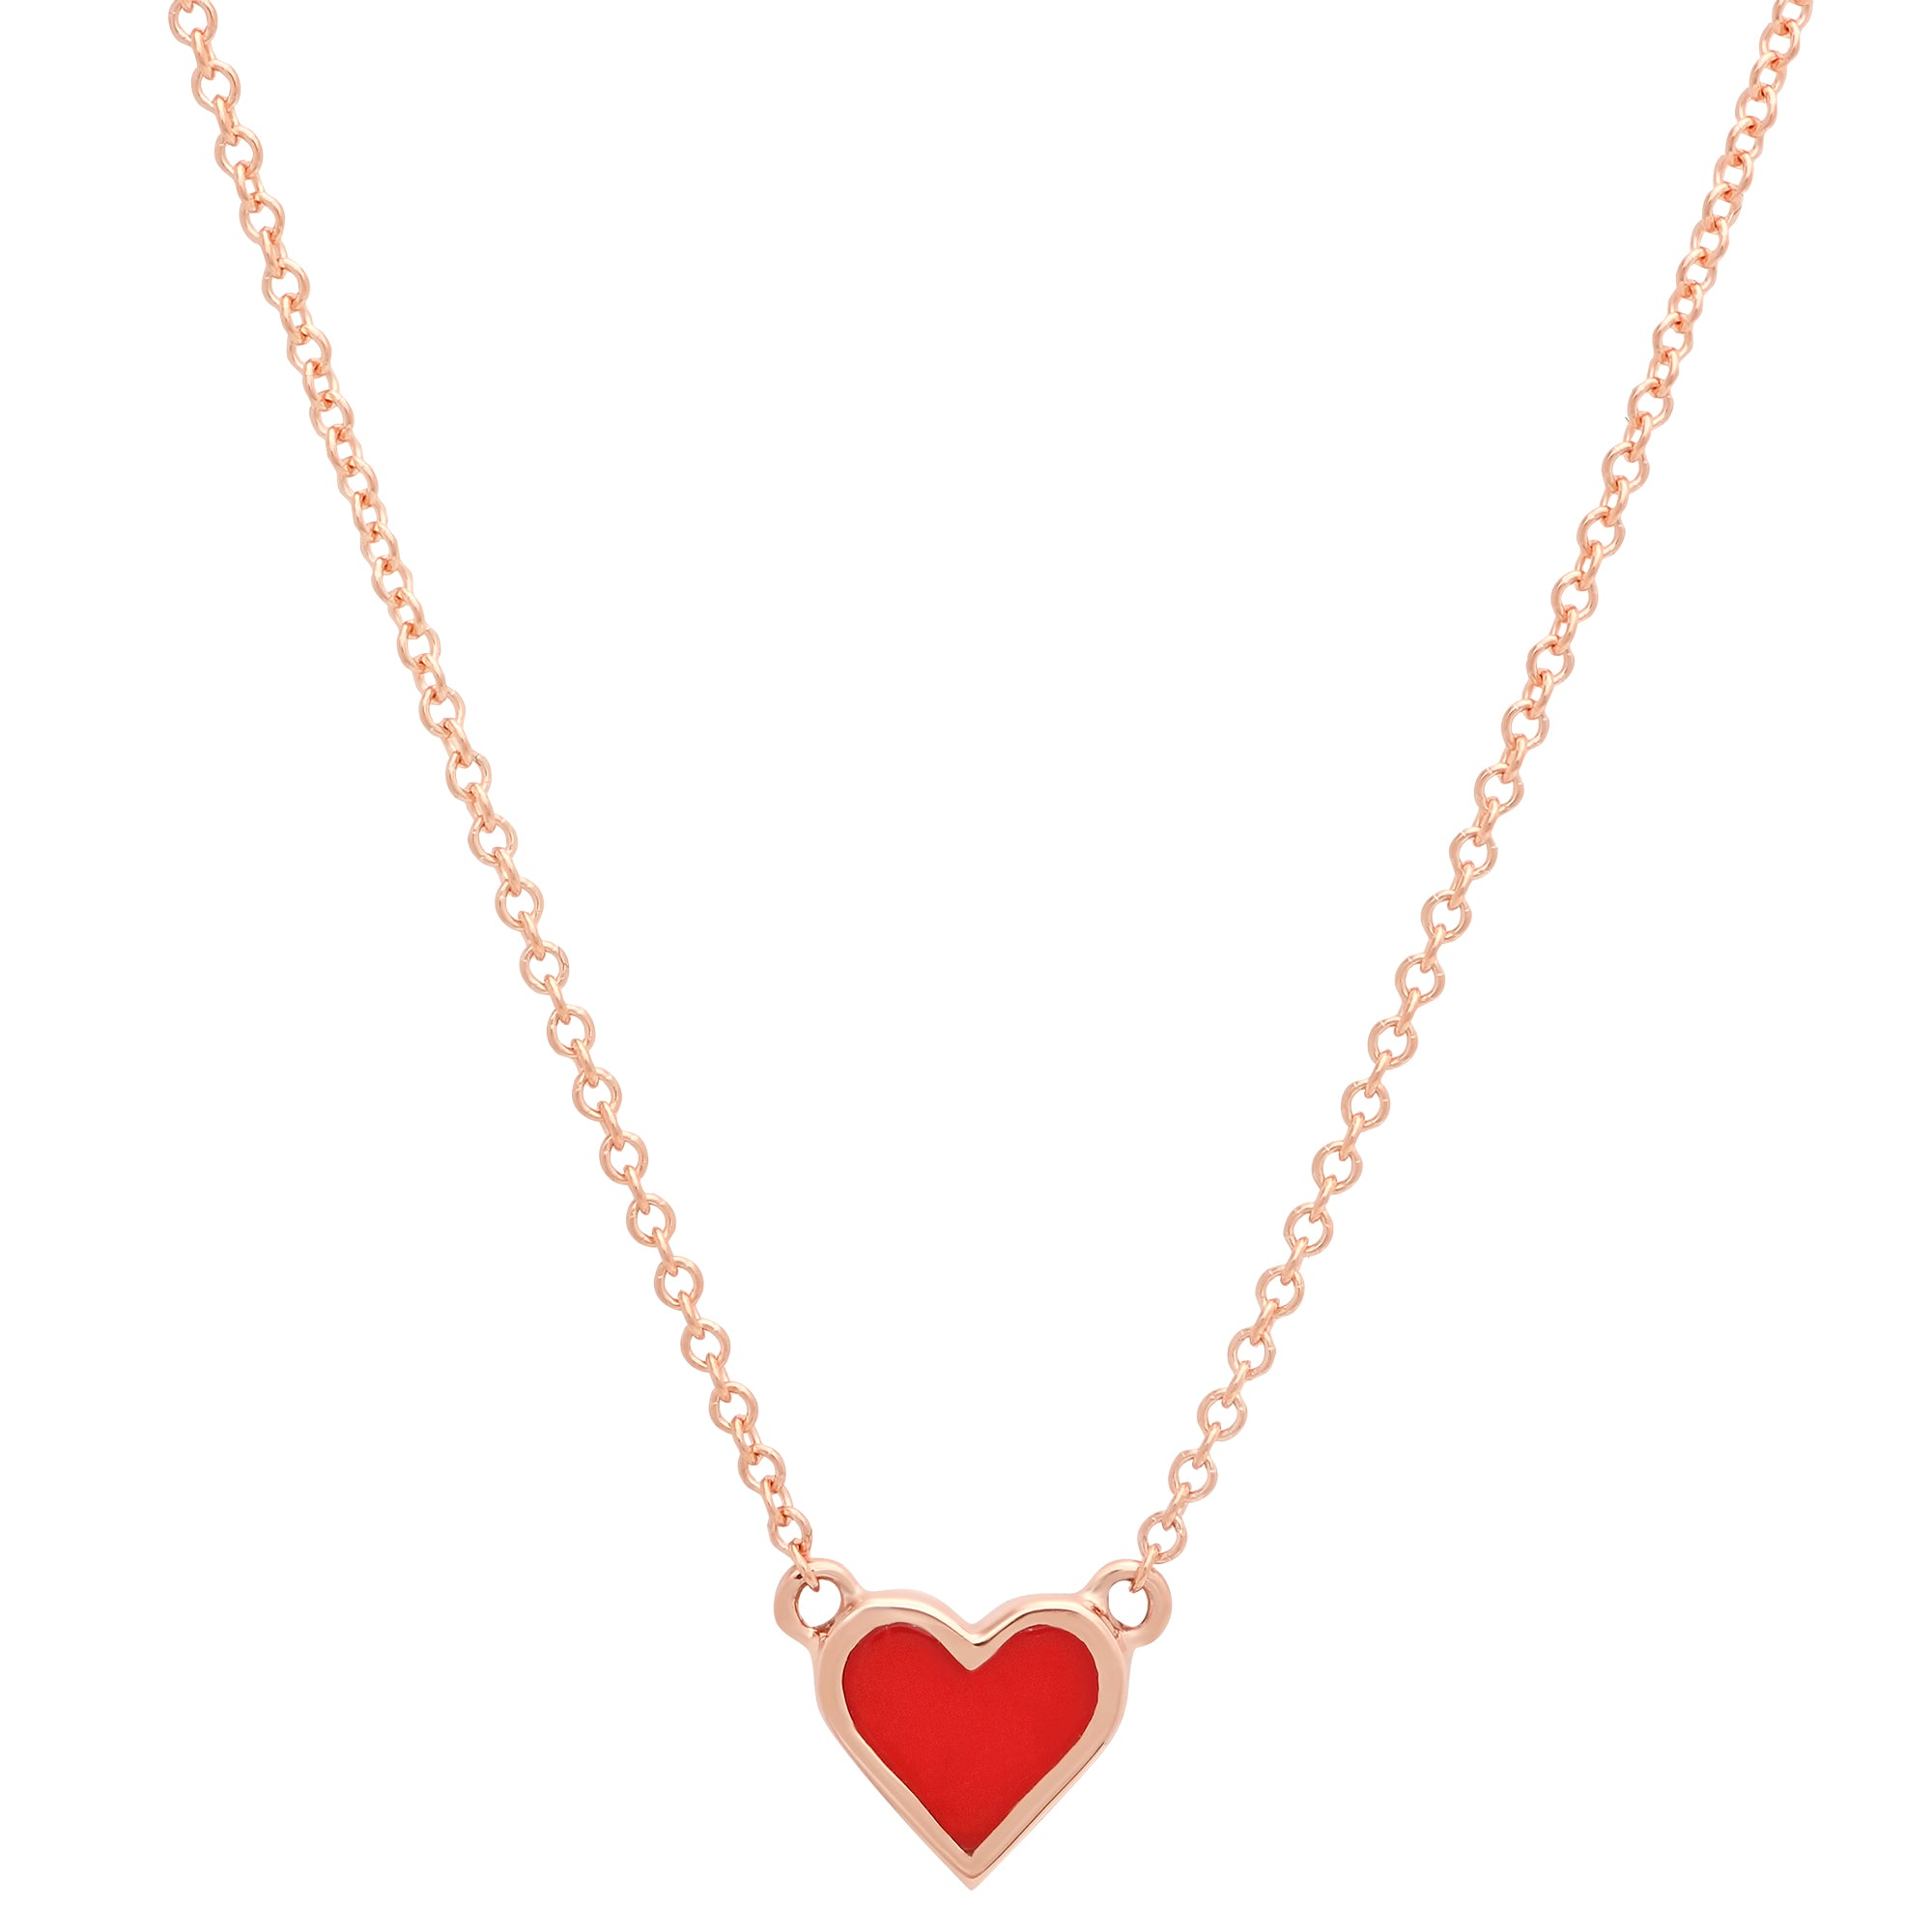 Red Enamel Heart Necklace